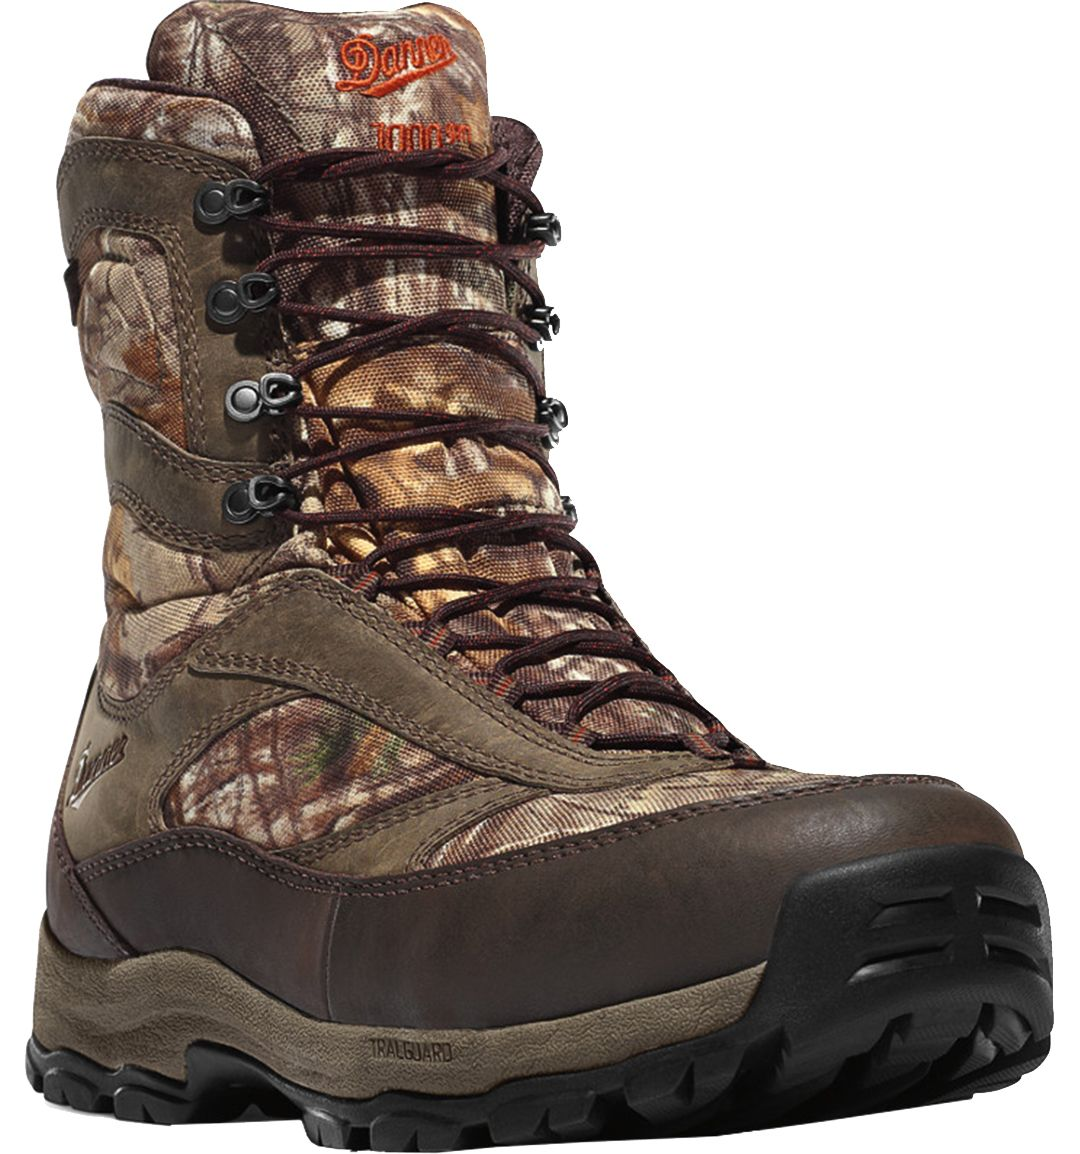 1b13ee0cbc3 Danner Women's High Ground 1000g Insulated Hunting Boots